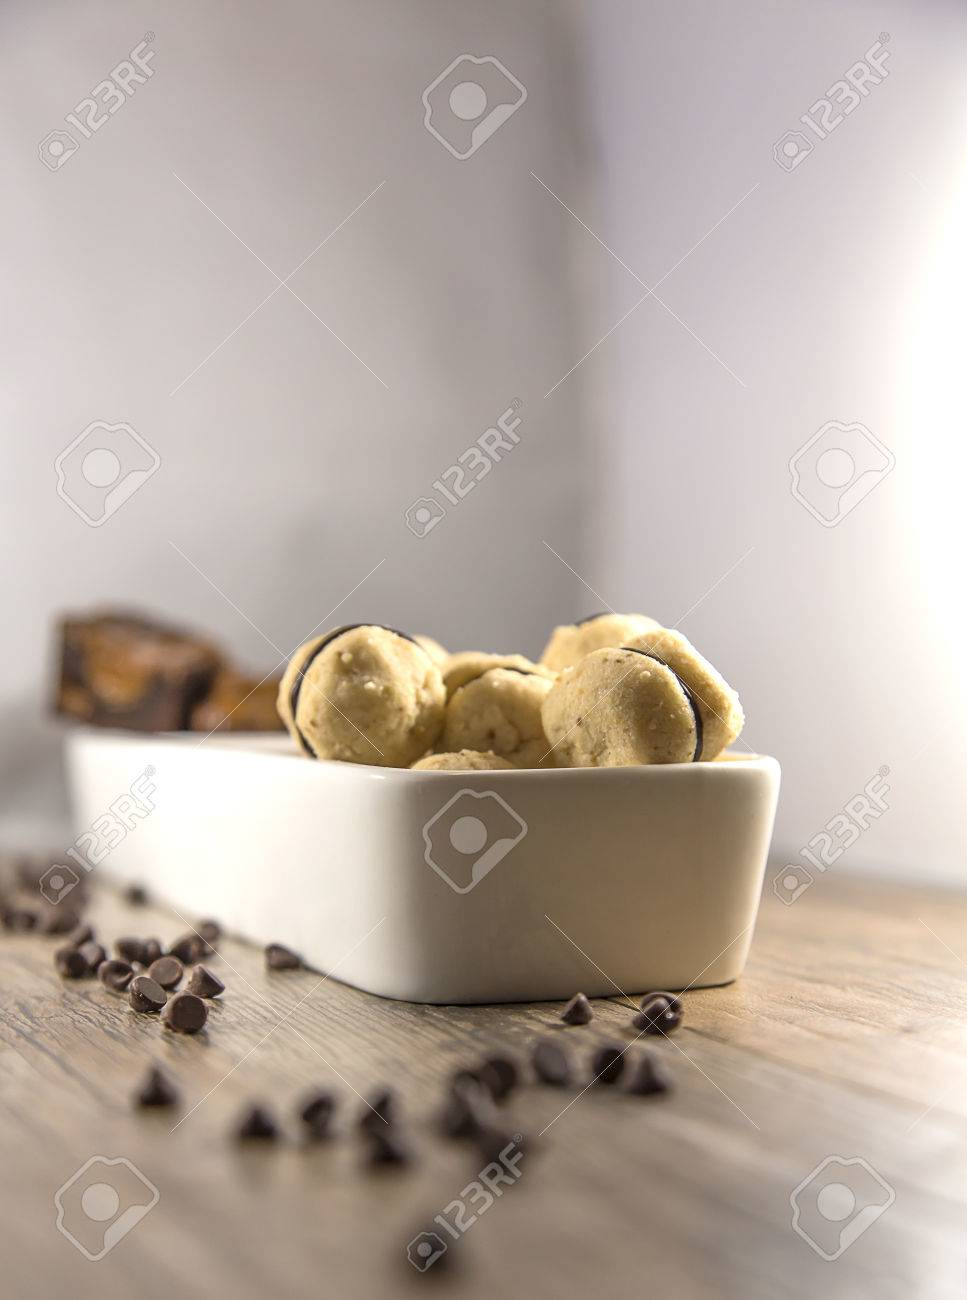 Display of round mini hazelnut cookies displayed in a white serving dish, with chocolate chips Stock Photo - 83522442